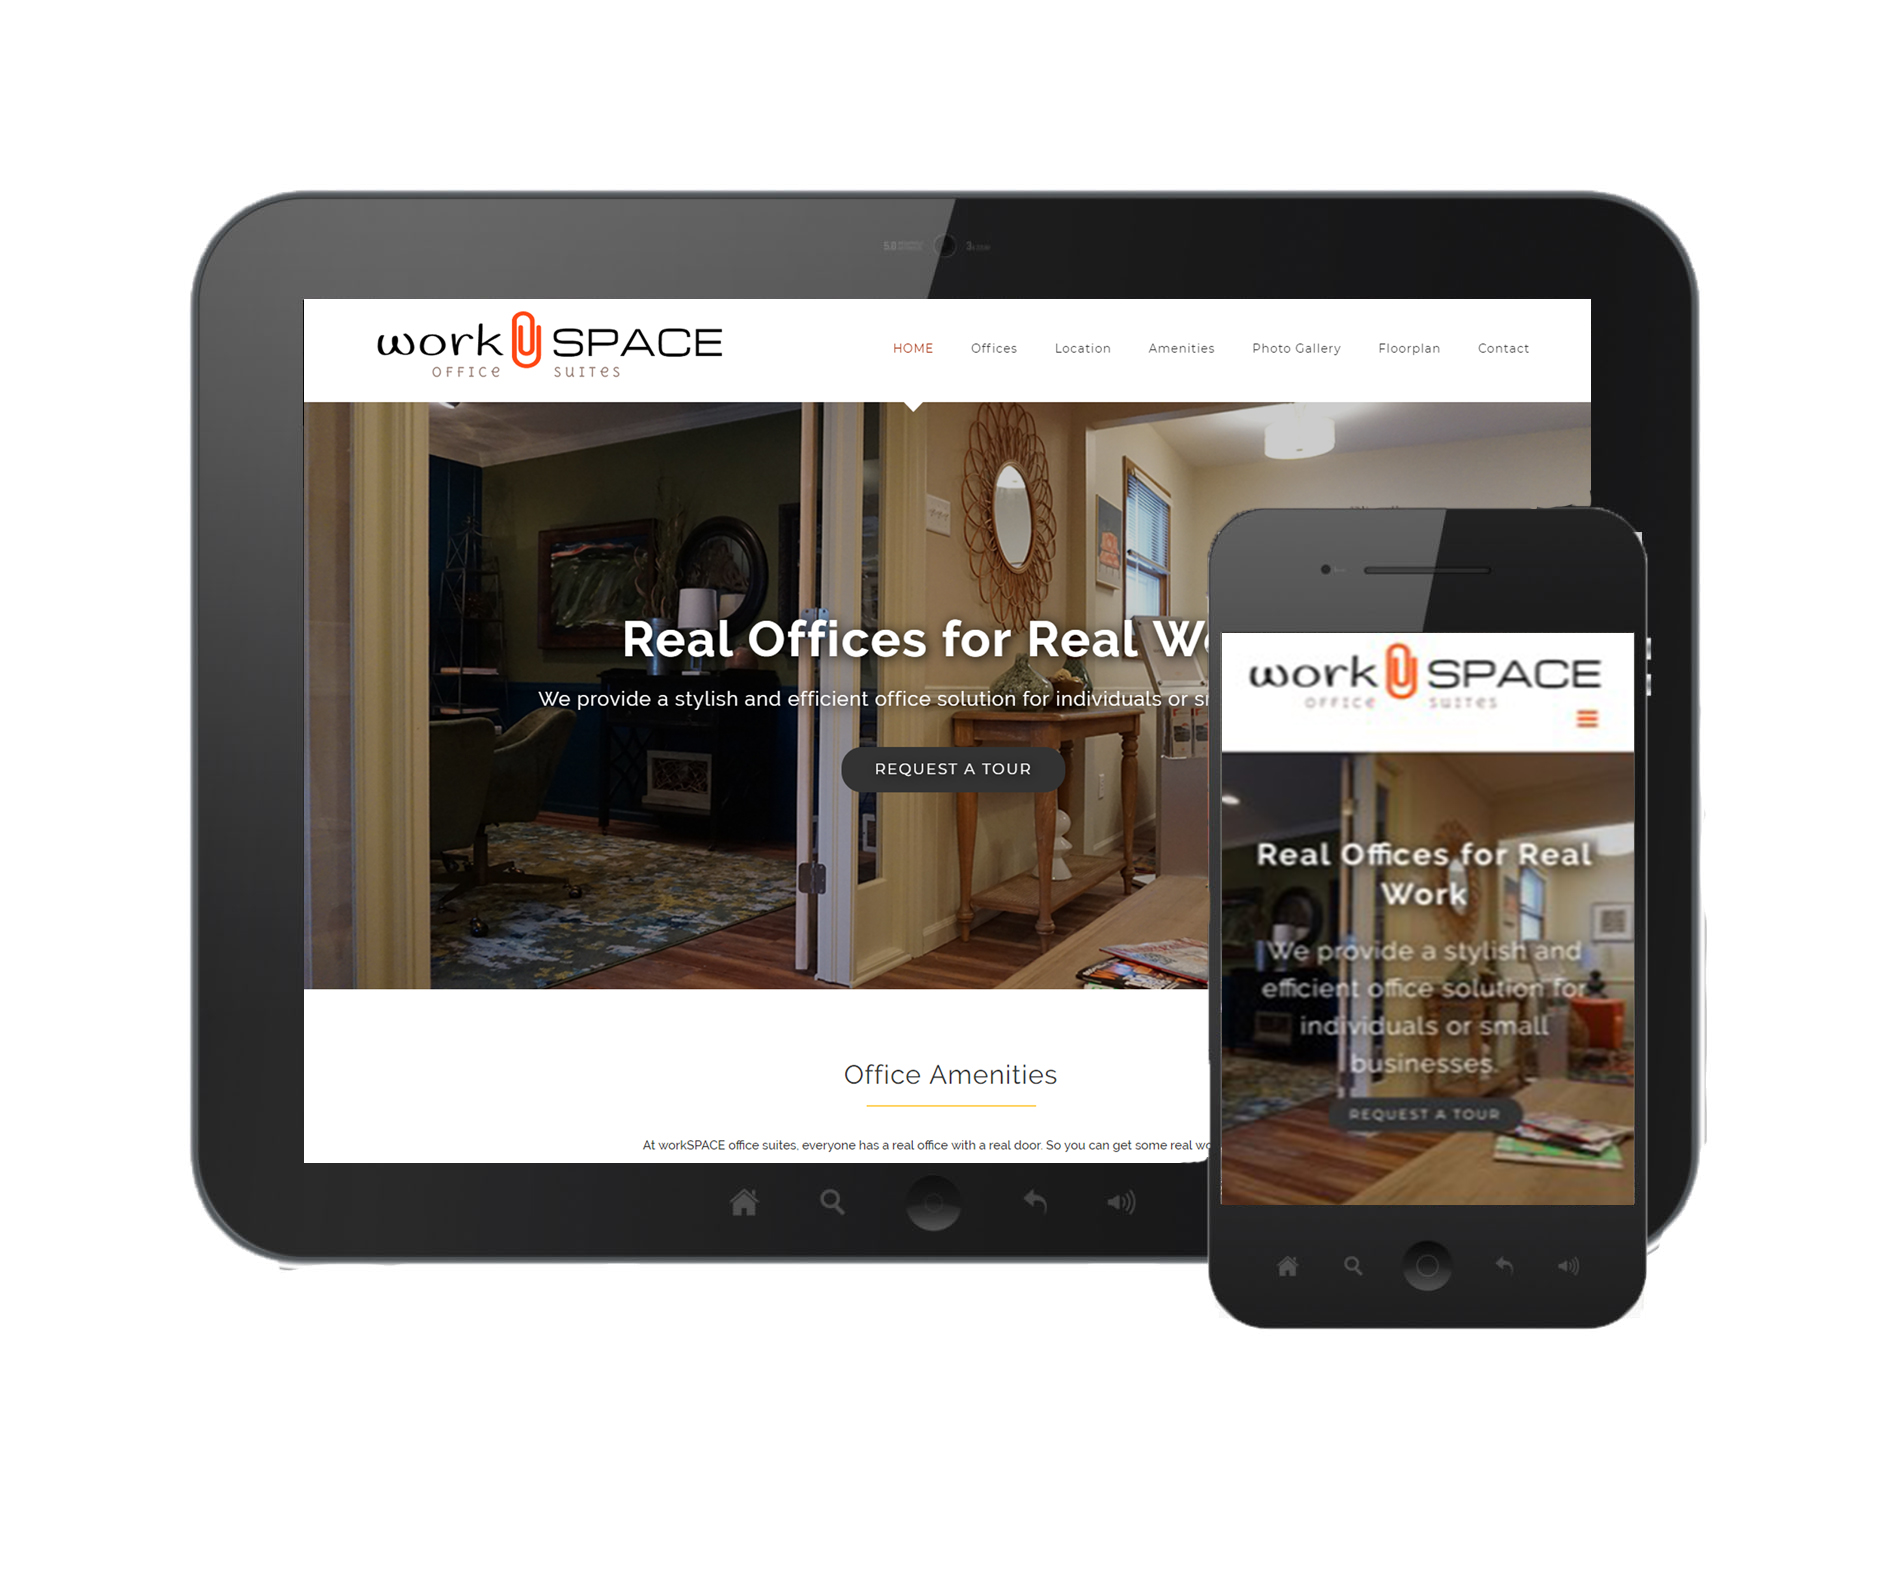 WorkSpace Mobile Site Image